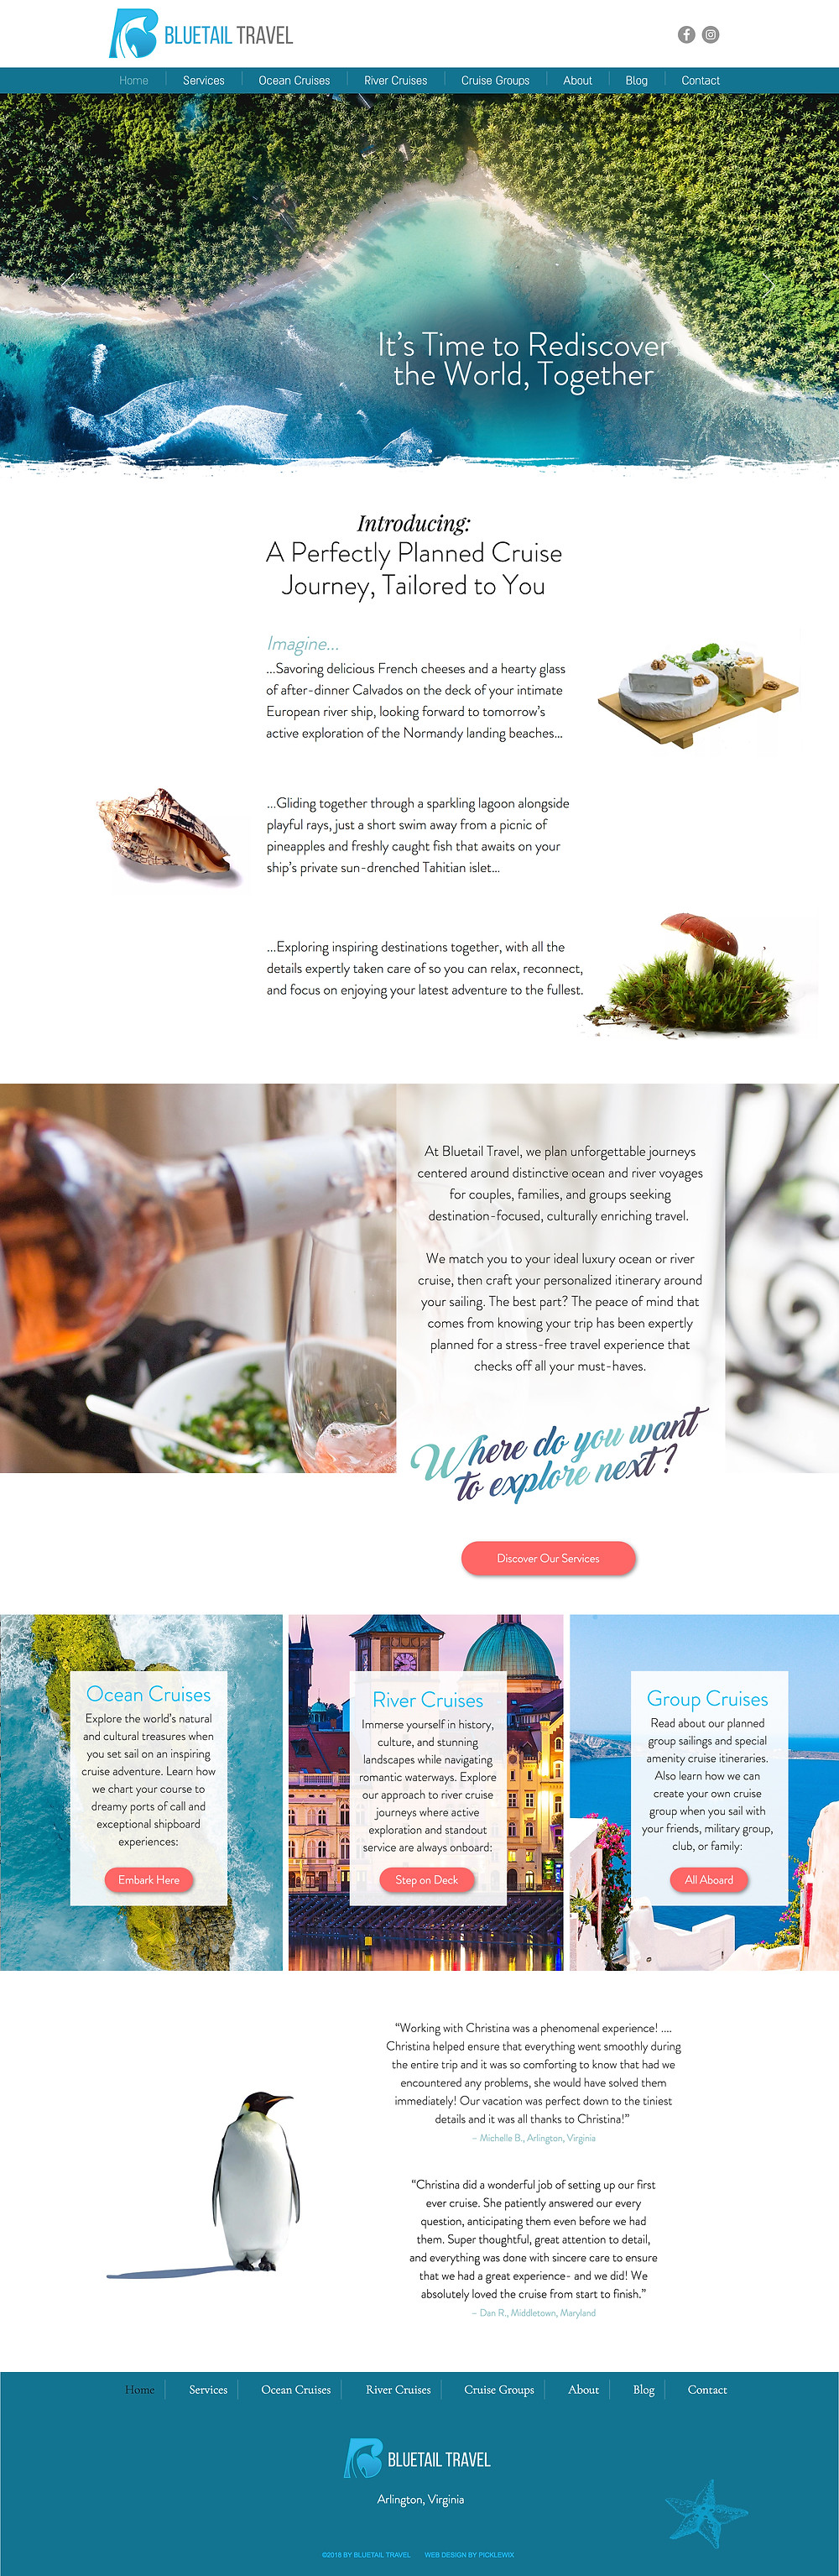 Website Design Template for Travel Agency